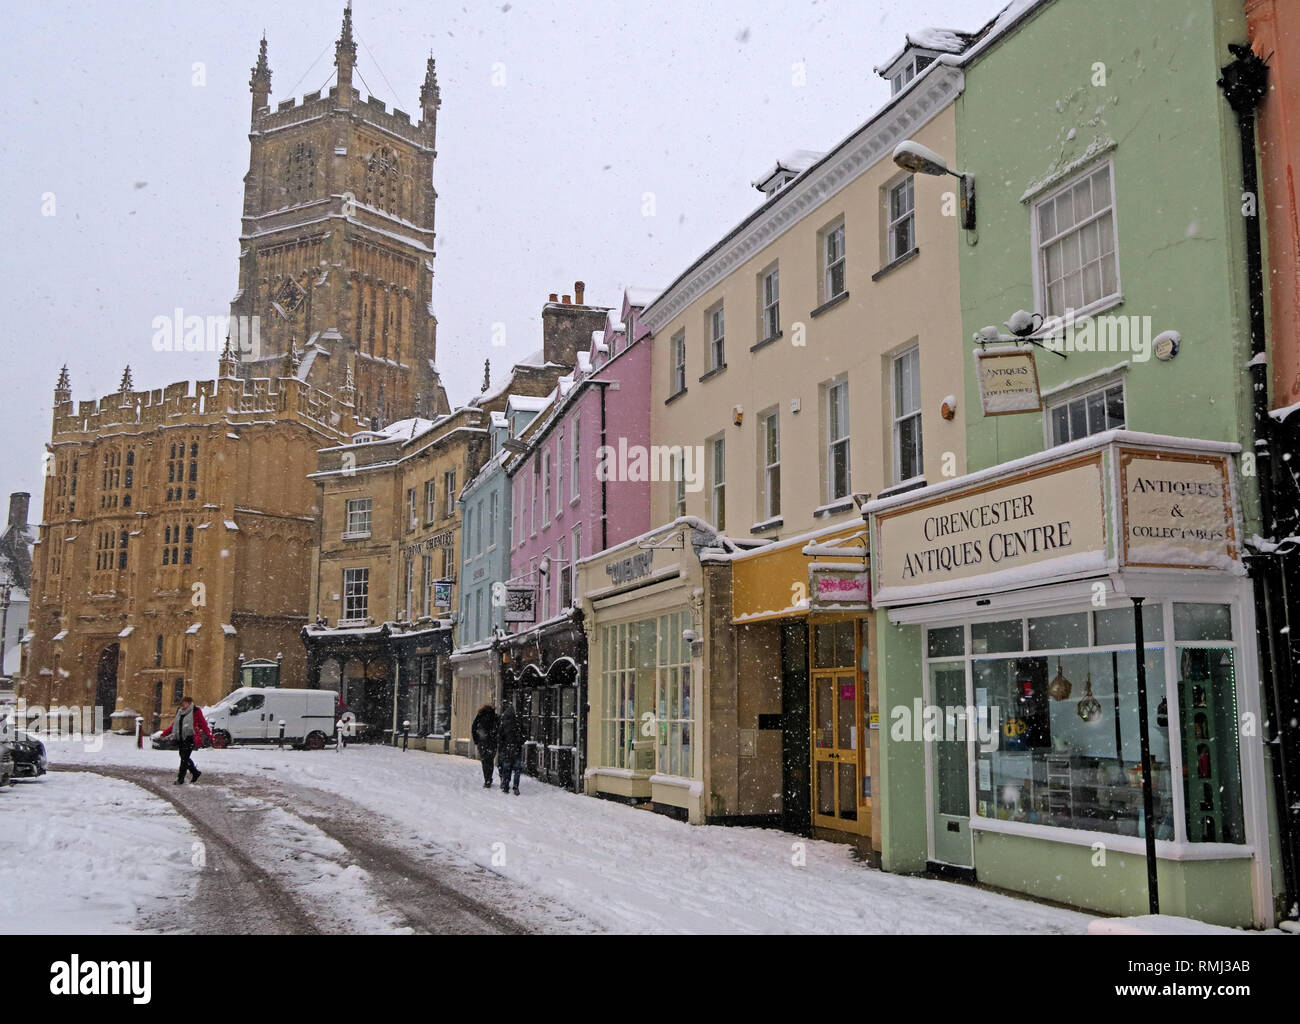 Winter snow in the market place, Cirencester town centre, Gloucestershire Cotswolds, South West England, UK - Stock Image